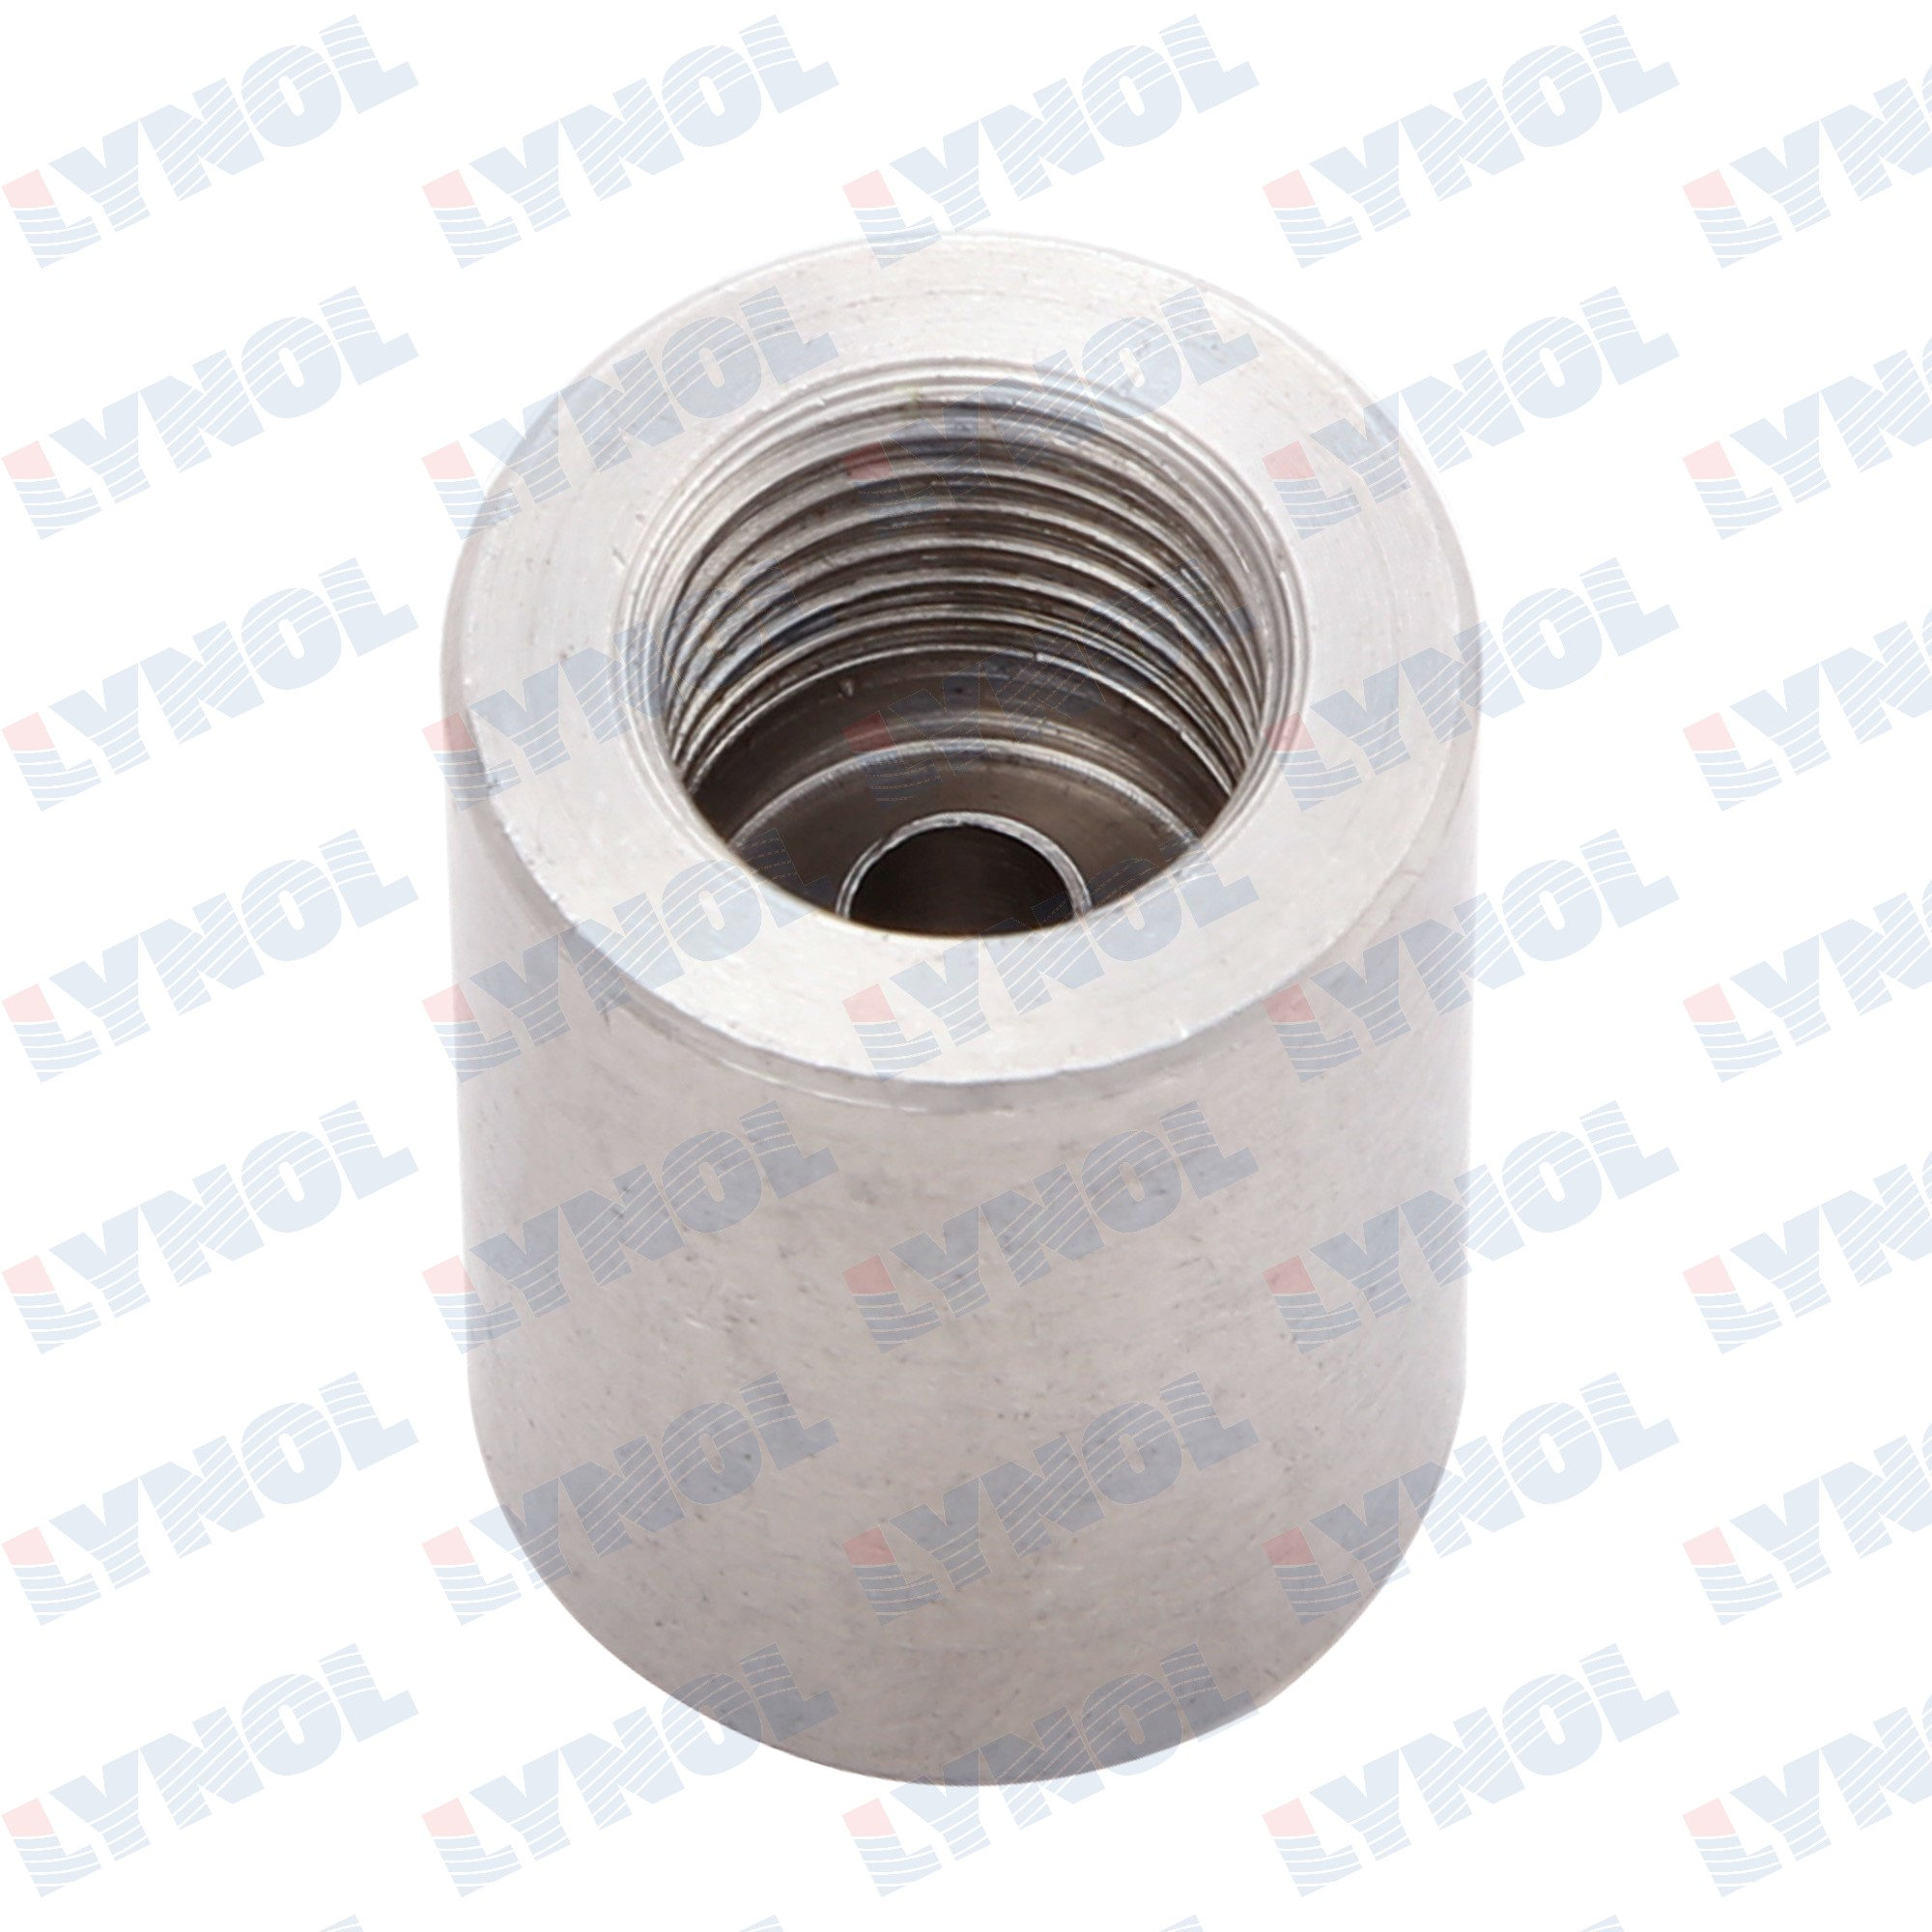 4504006 - SENSOR BUNG - M12*1.25 - Reverse Flare Overall Length 1'', Outside Diameter 3/4''